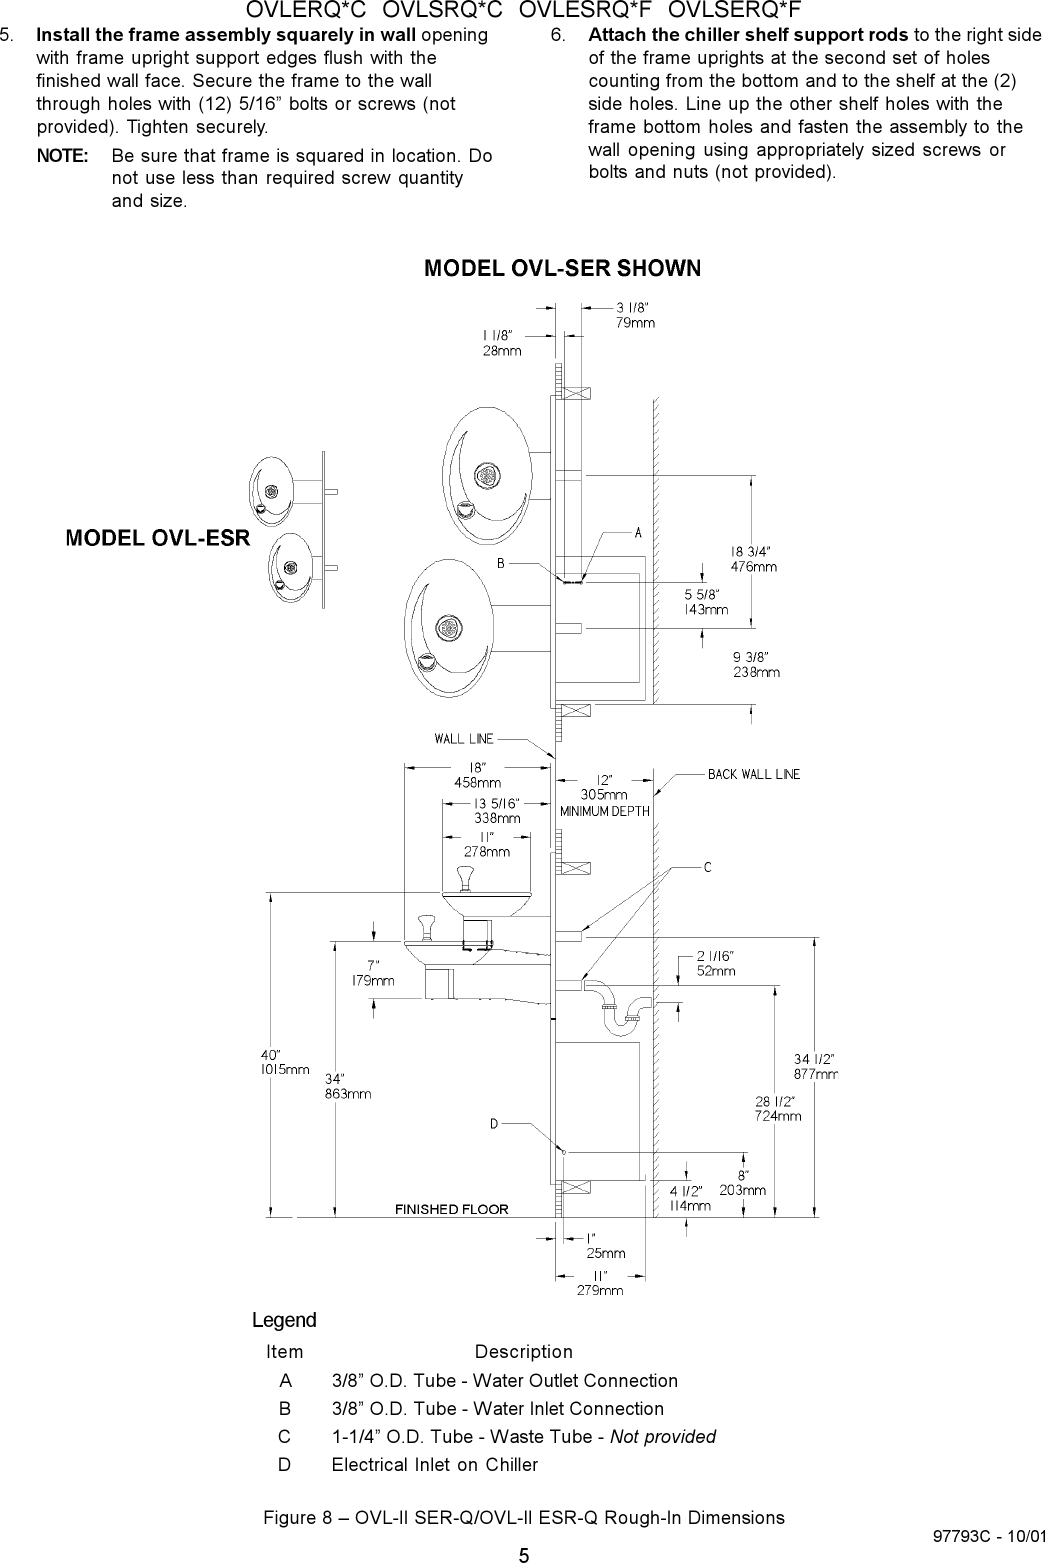 Halsey Taylor Wiring Diagram | Wiring Diagram on